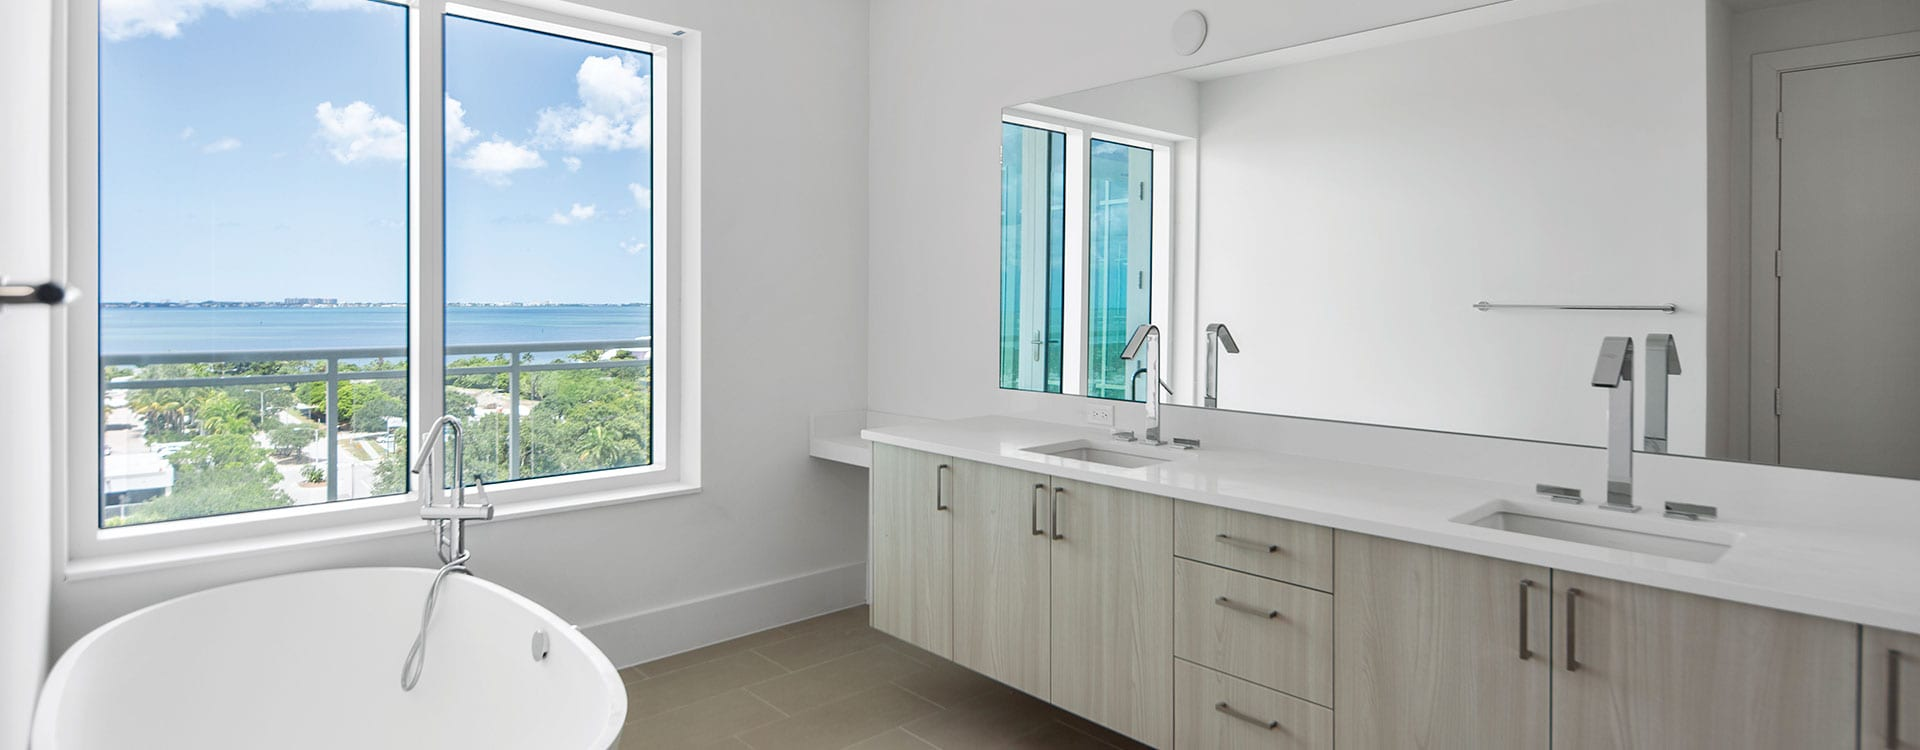 BLVD Sarasota Residence 901 Bathroom with a view of the bay